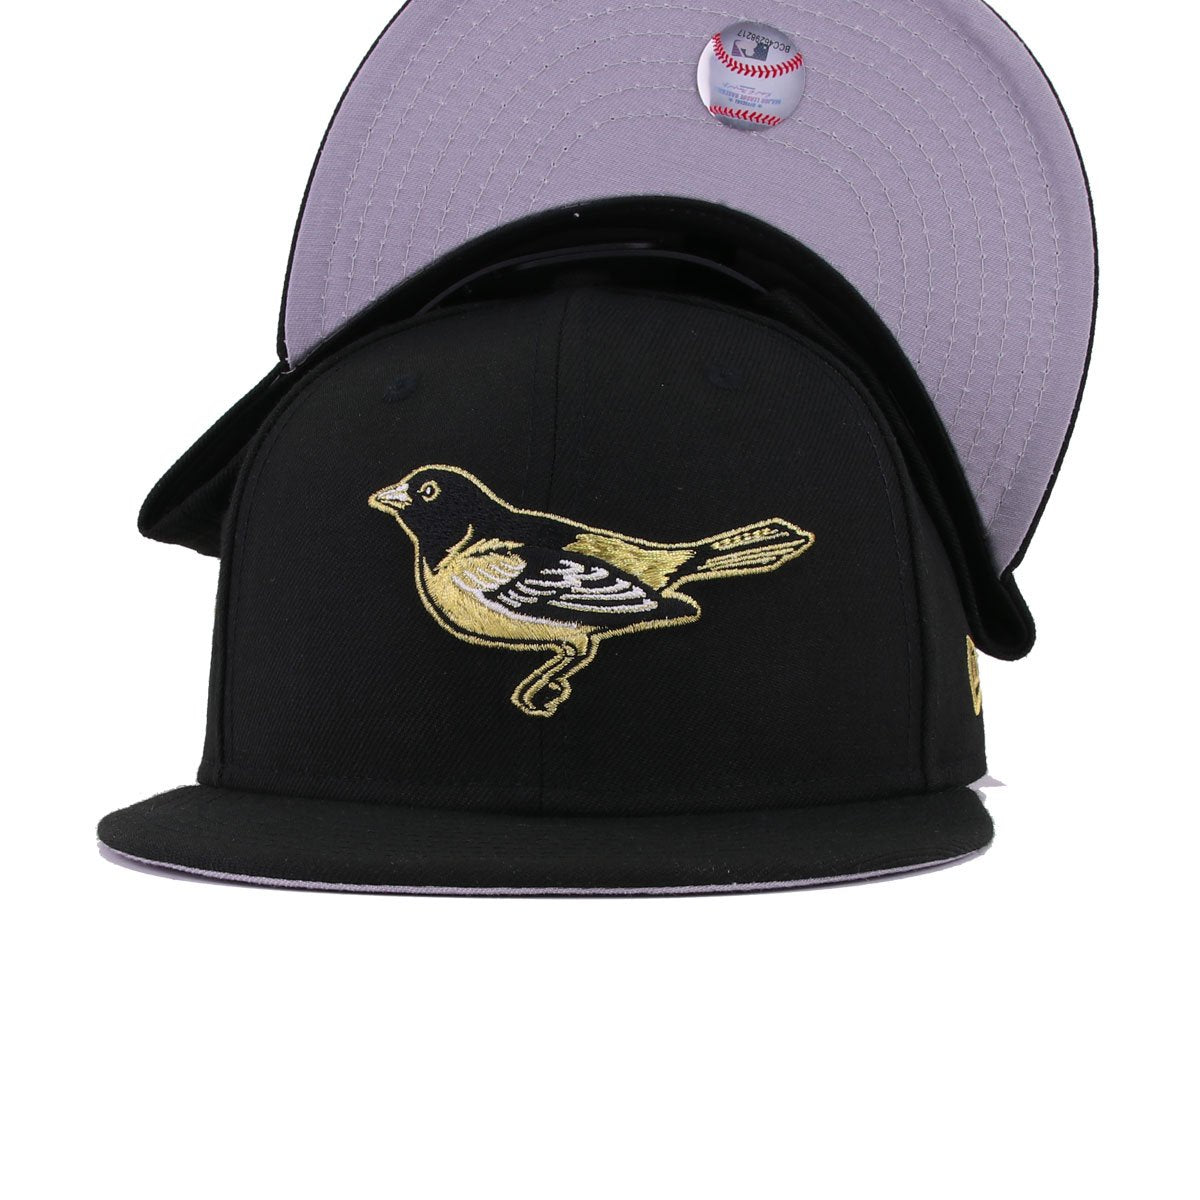 Baltimore Orioles Black Metallic Gold New Era 9Fifty Snapback